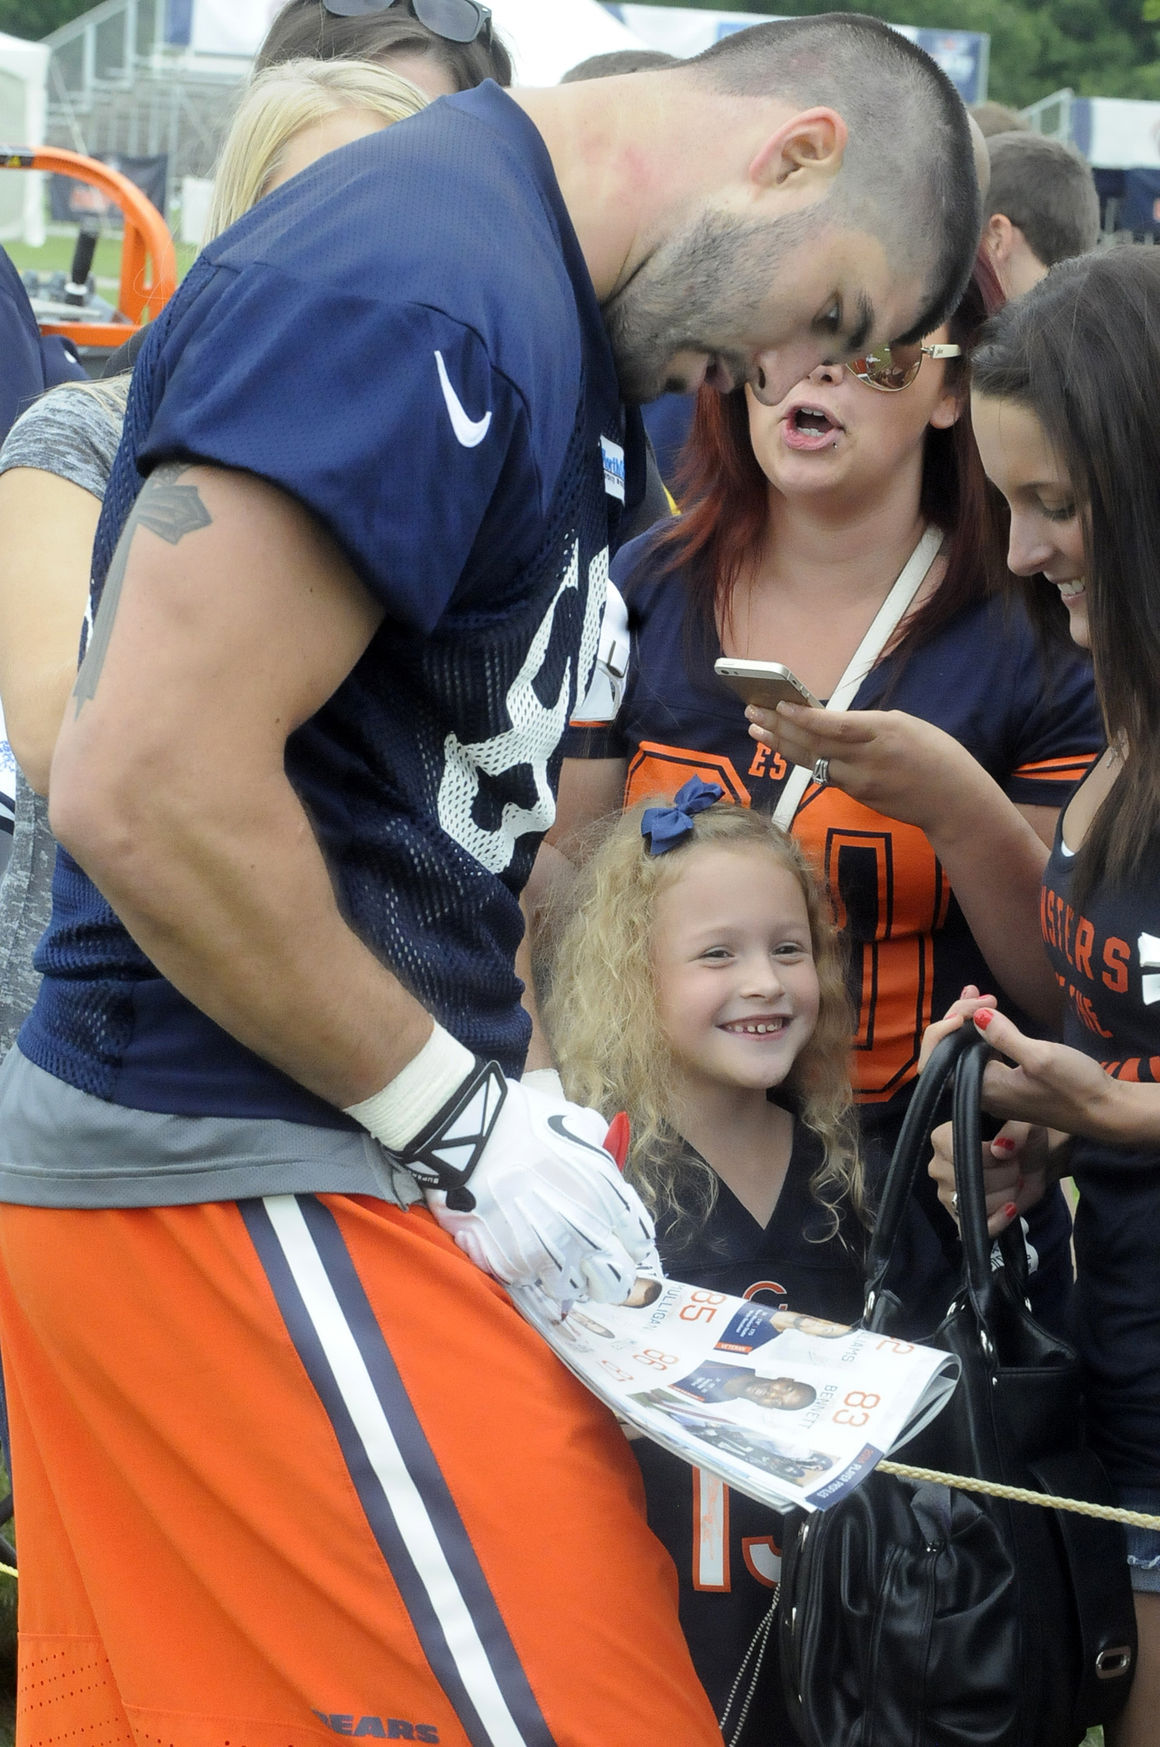 Chicago bears signing autographs quotes about happiness